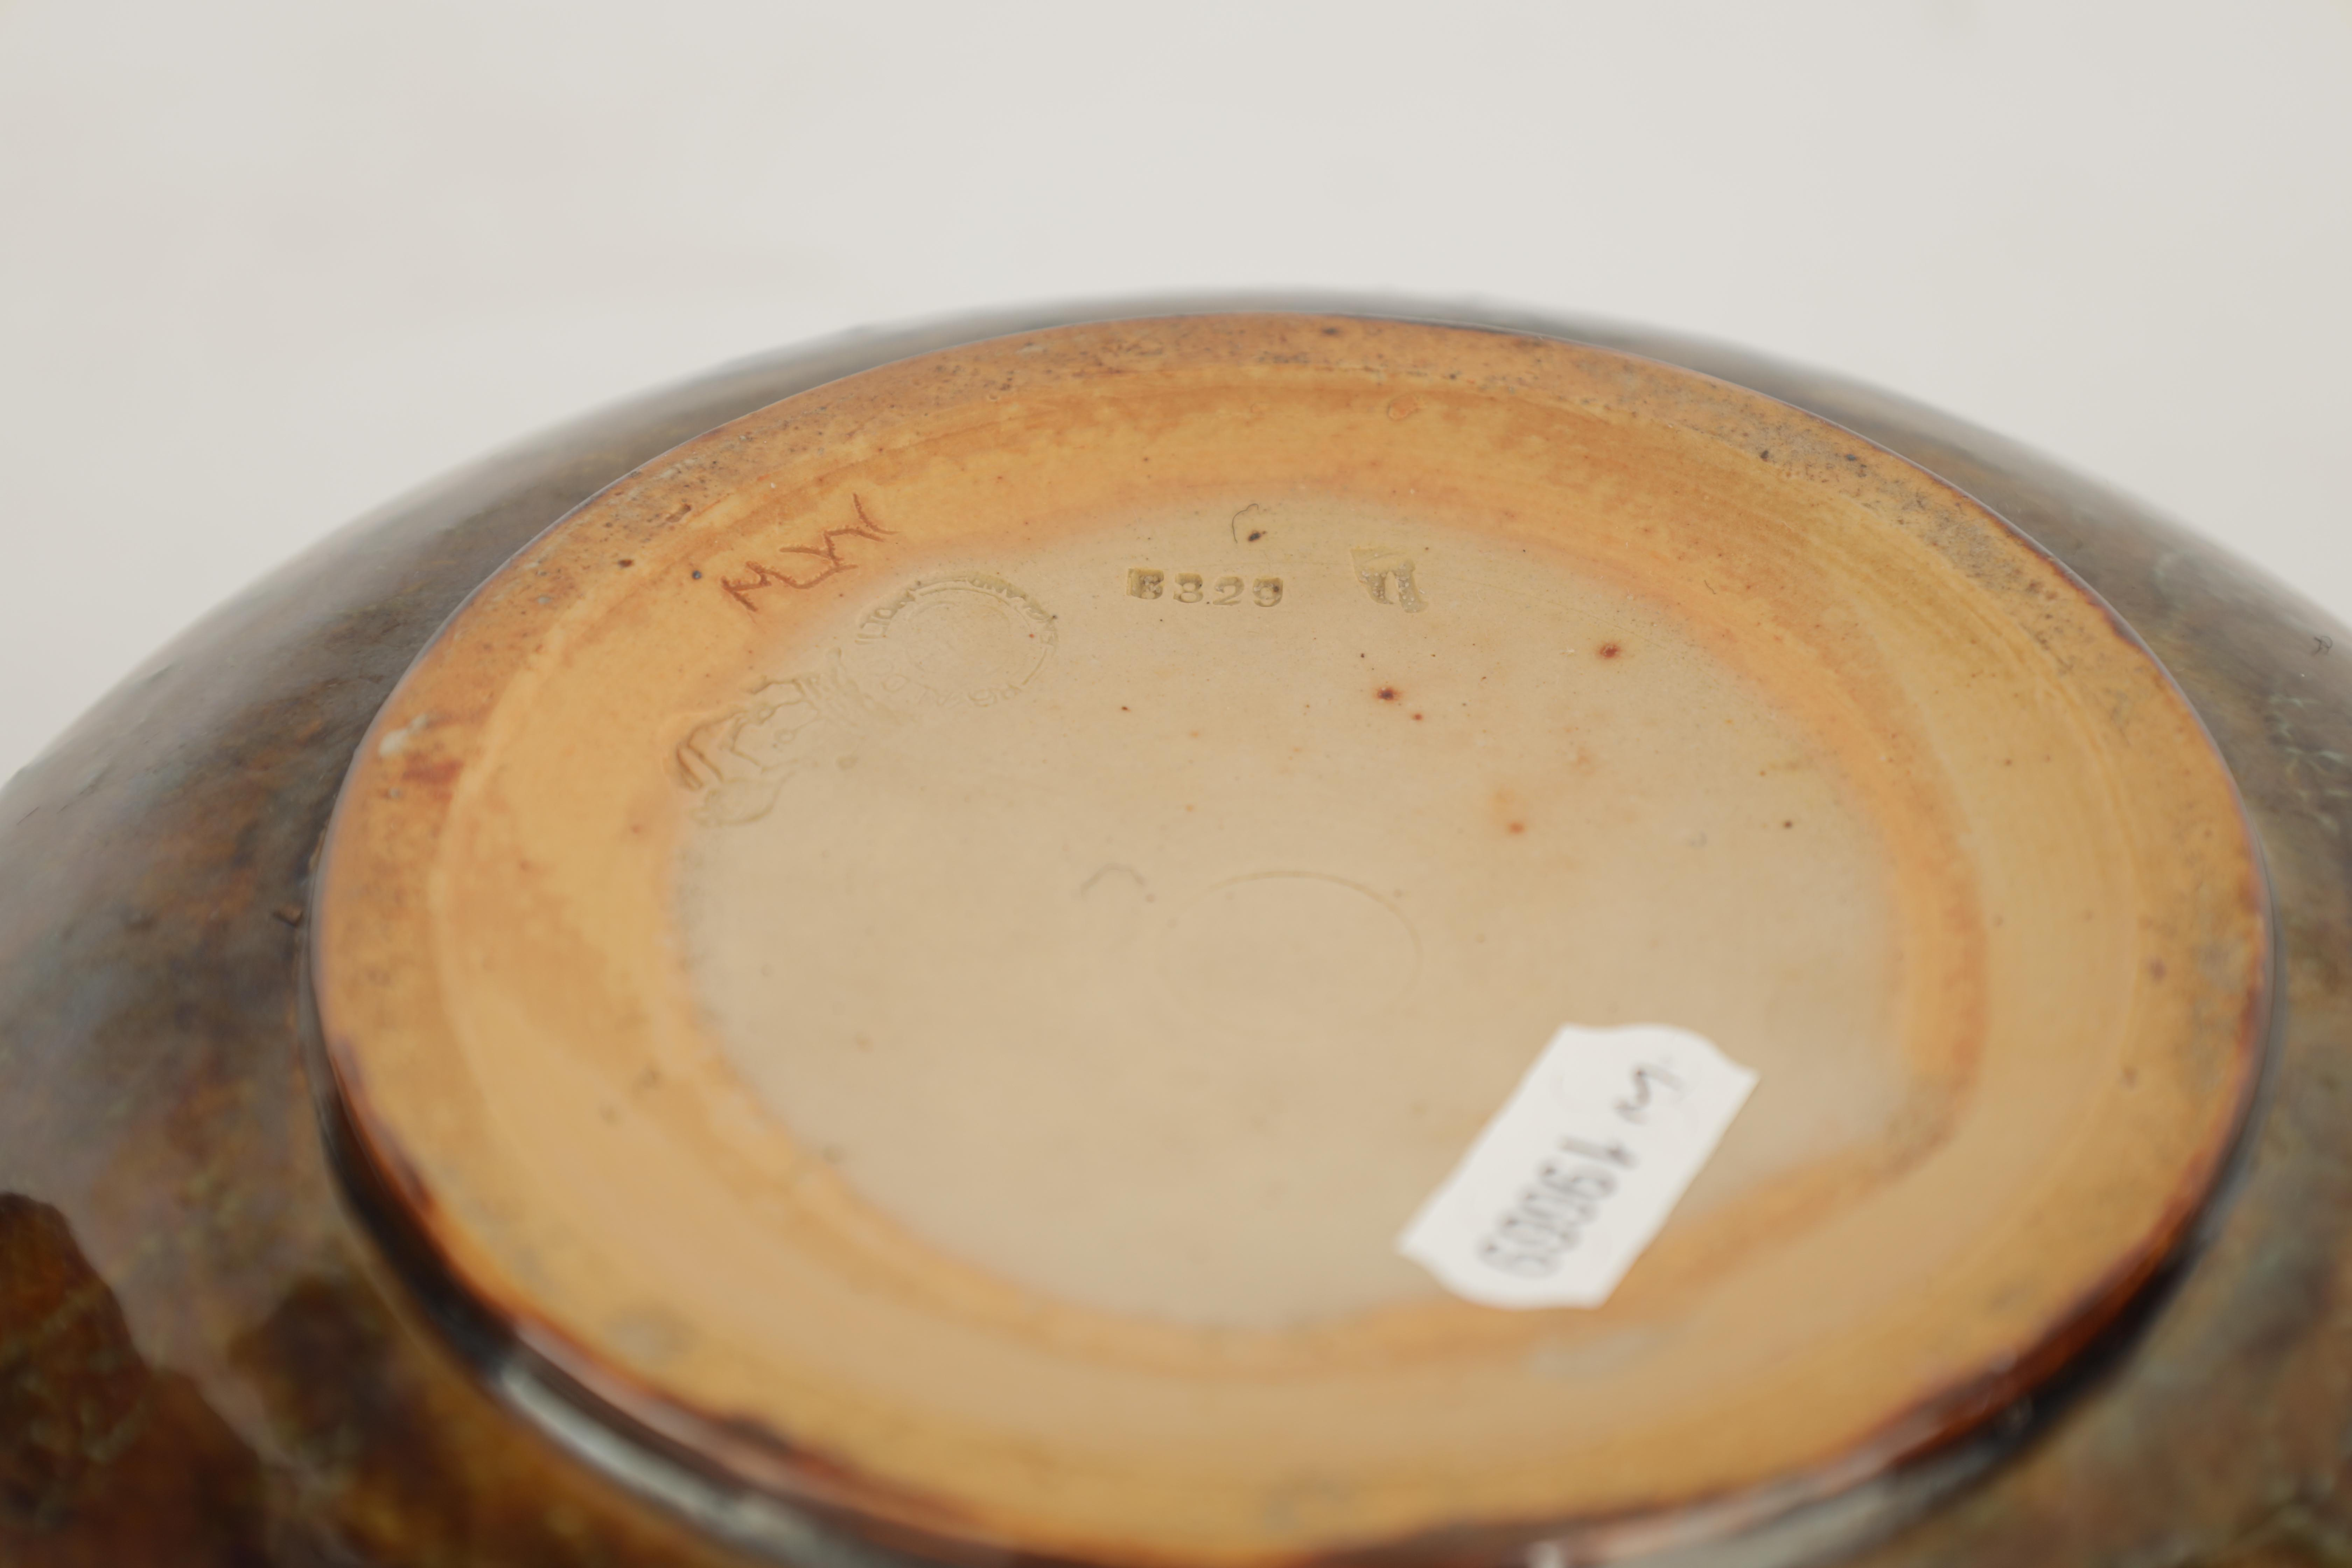 AN UNUSUAL ROYAL DOULTON TAPERED VASE WITH ROUNDED UPPER BODY decorated with designs of fruit and - Image 6 of 7